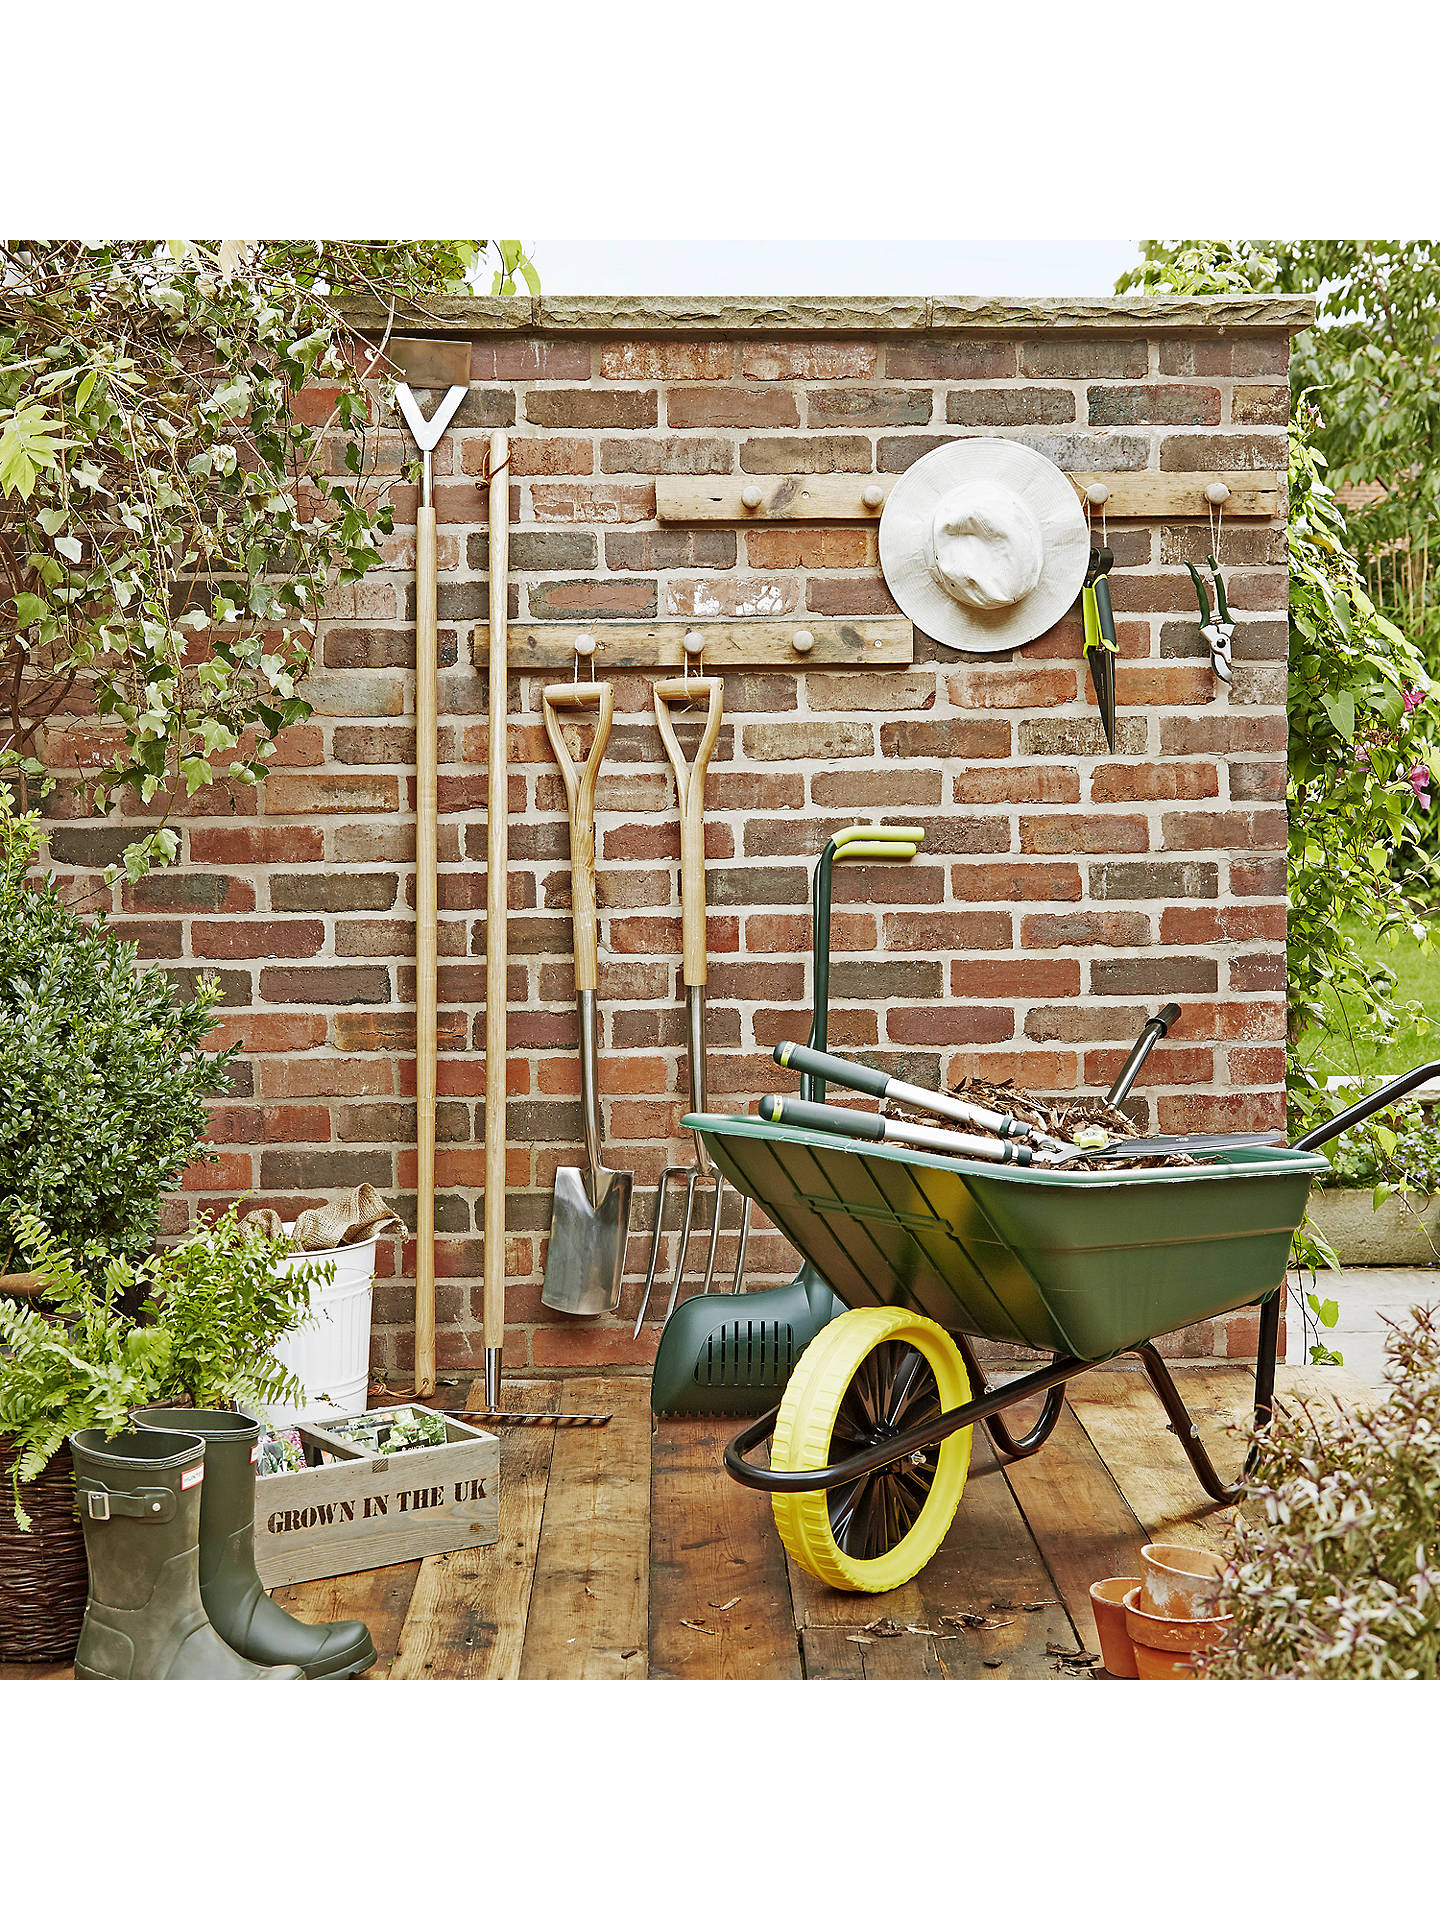 BuyKew Gardens Razorsharp Bypass Secateur Online at johnlewis.com